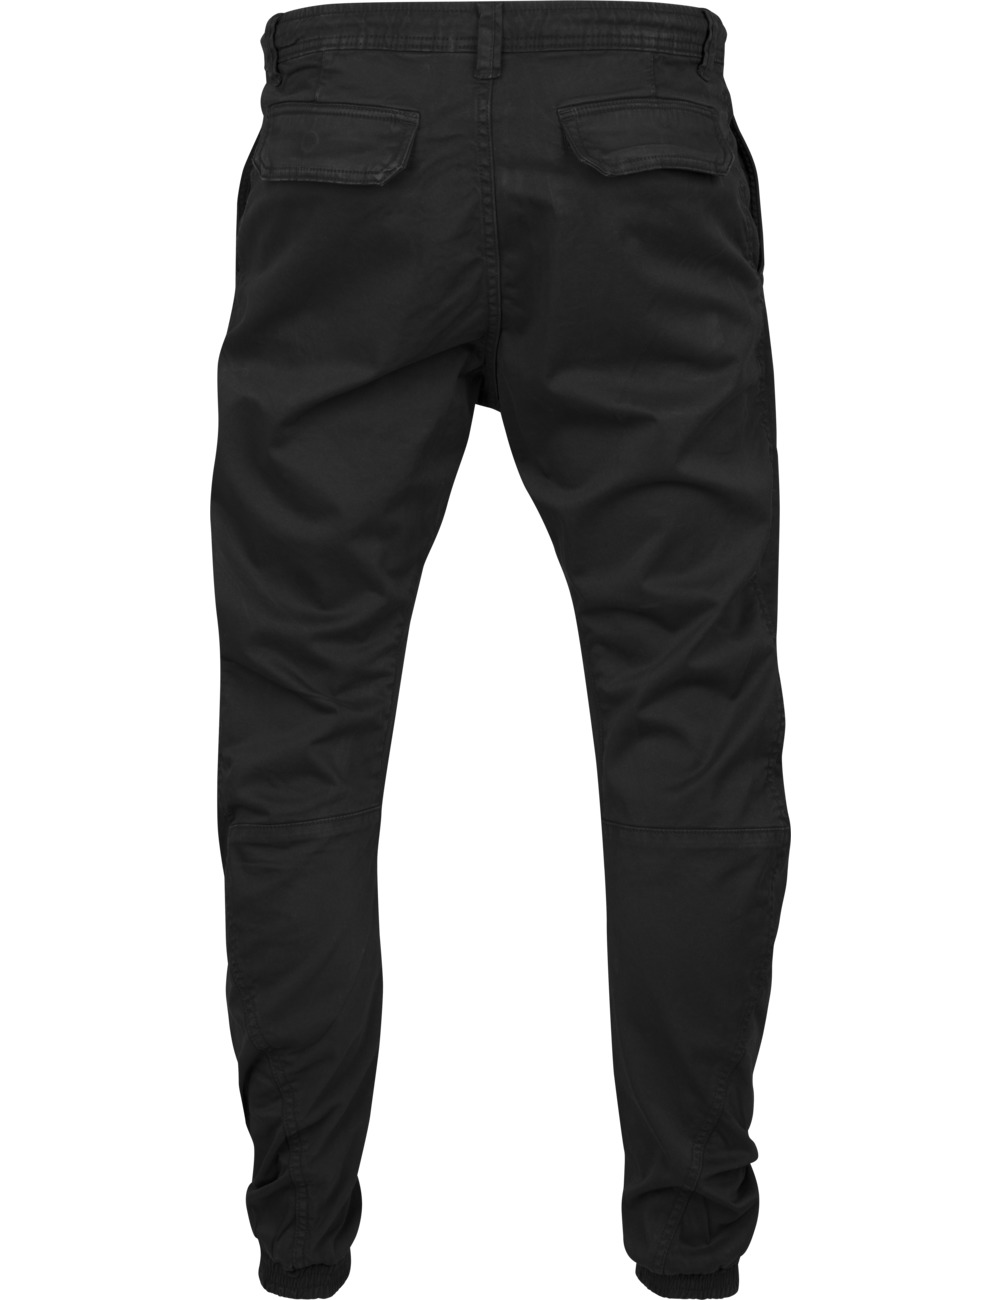 urban-classics-herren-sweatpants-stretch-jogging-pants